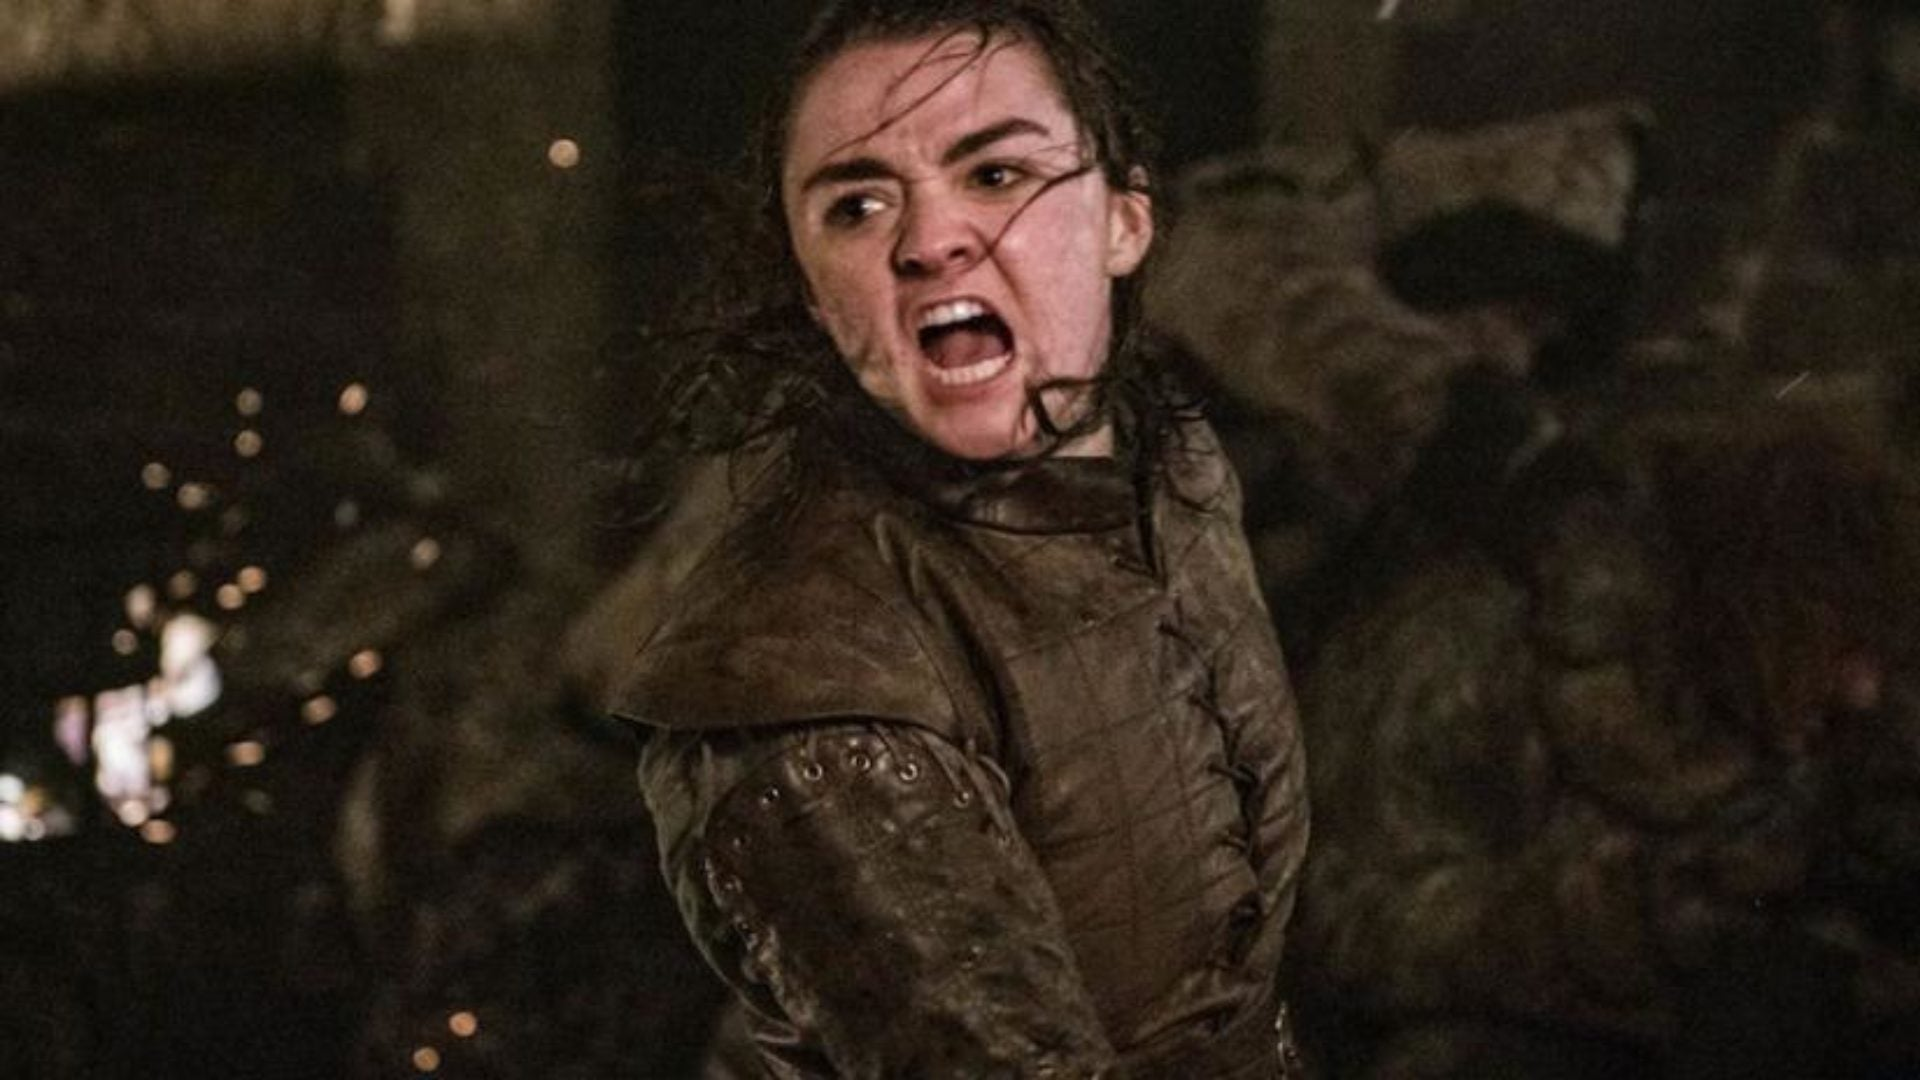 'Game of Thrones' Group Chat: Arya Stark, That's It, That's The Headline